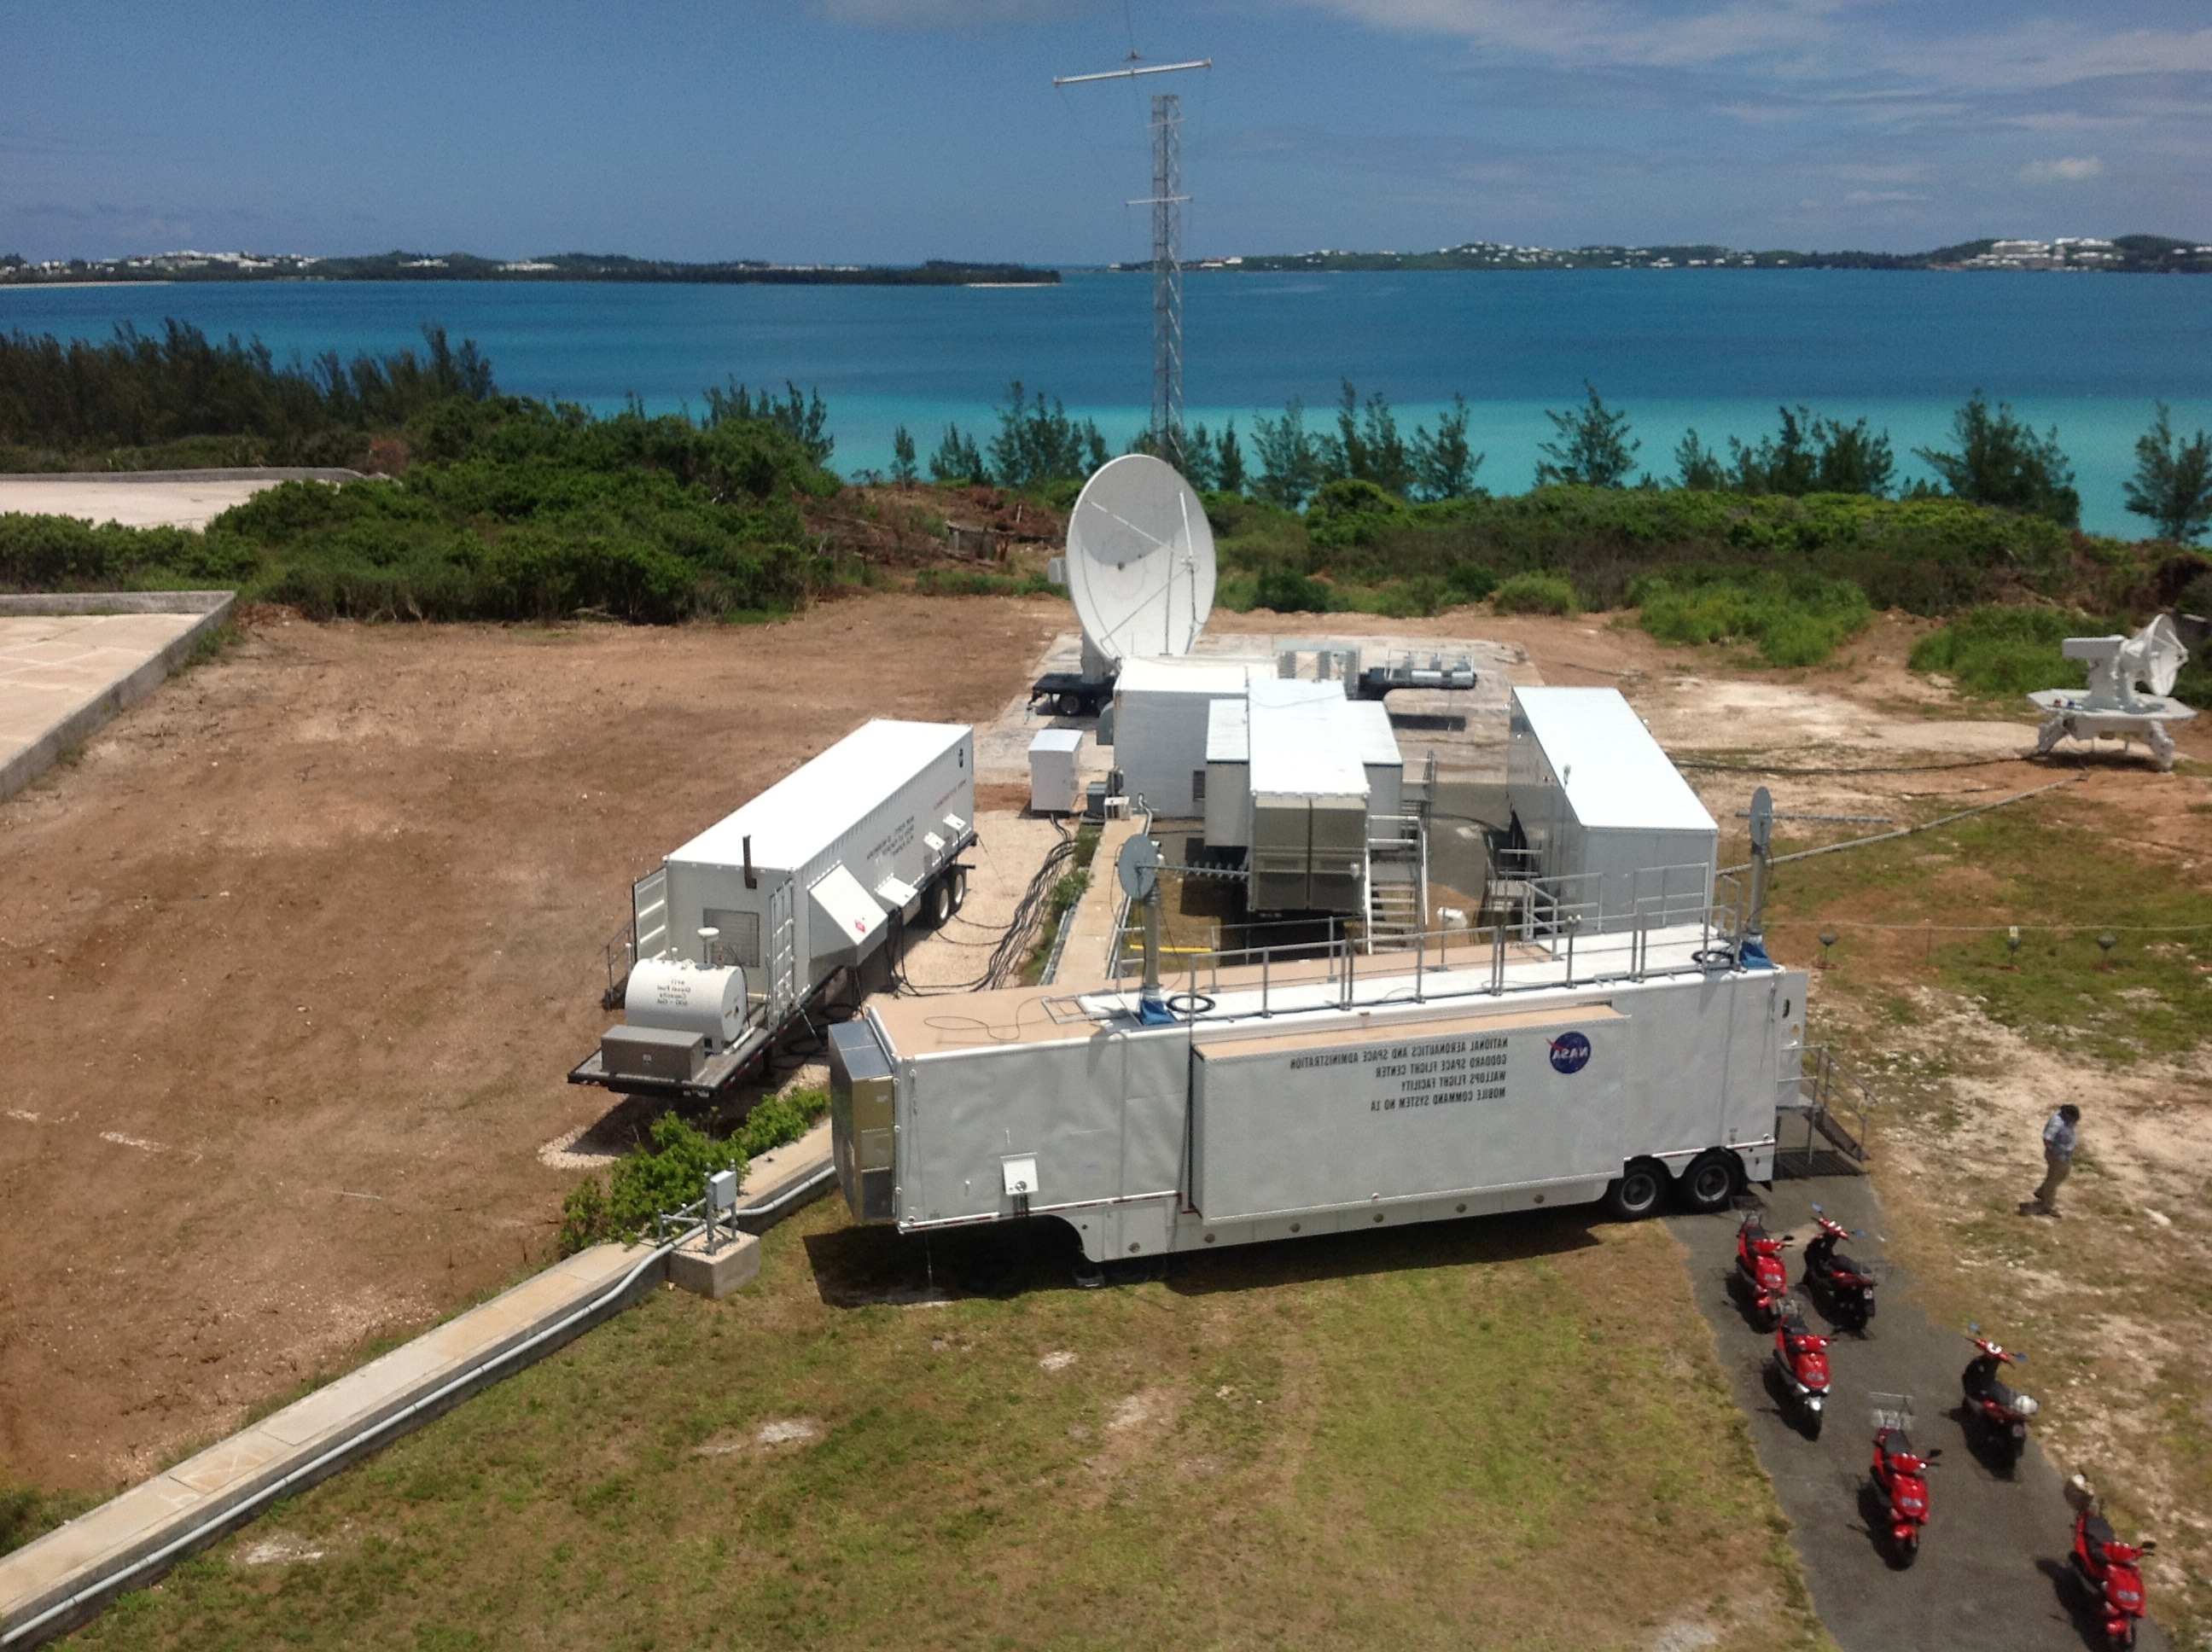 NASA Wallops Flight Facility temporary mobile tracking station in Bermuda.